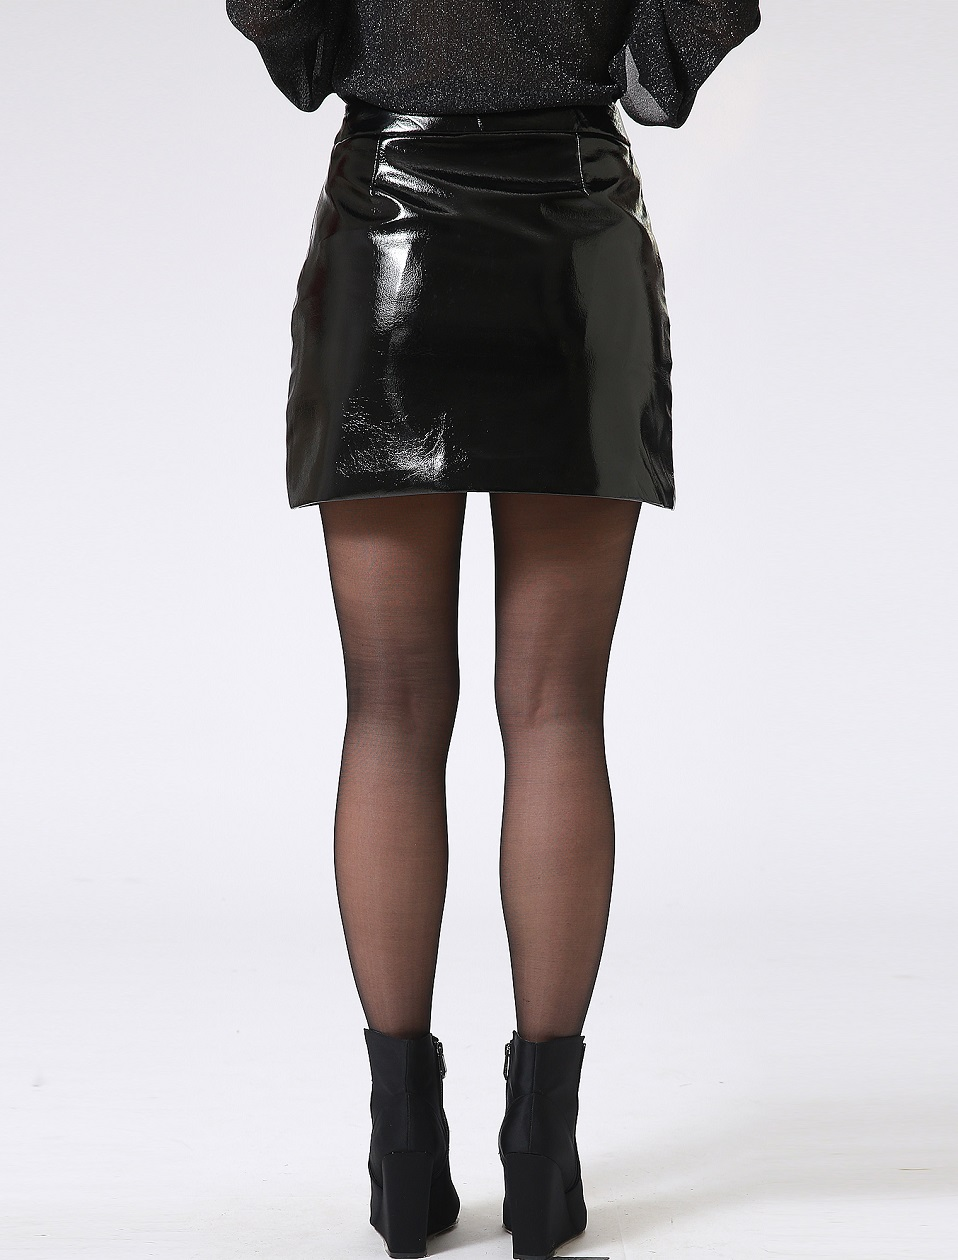 Autumn Winter Women Sexy Mini Skirt Black faux Patent Leather Female Short Pencil Skirt Zipper Fashion Streetwear Skirts Talever 8